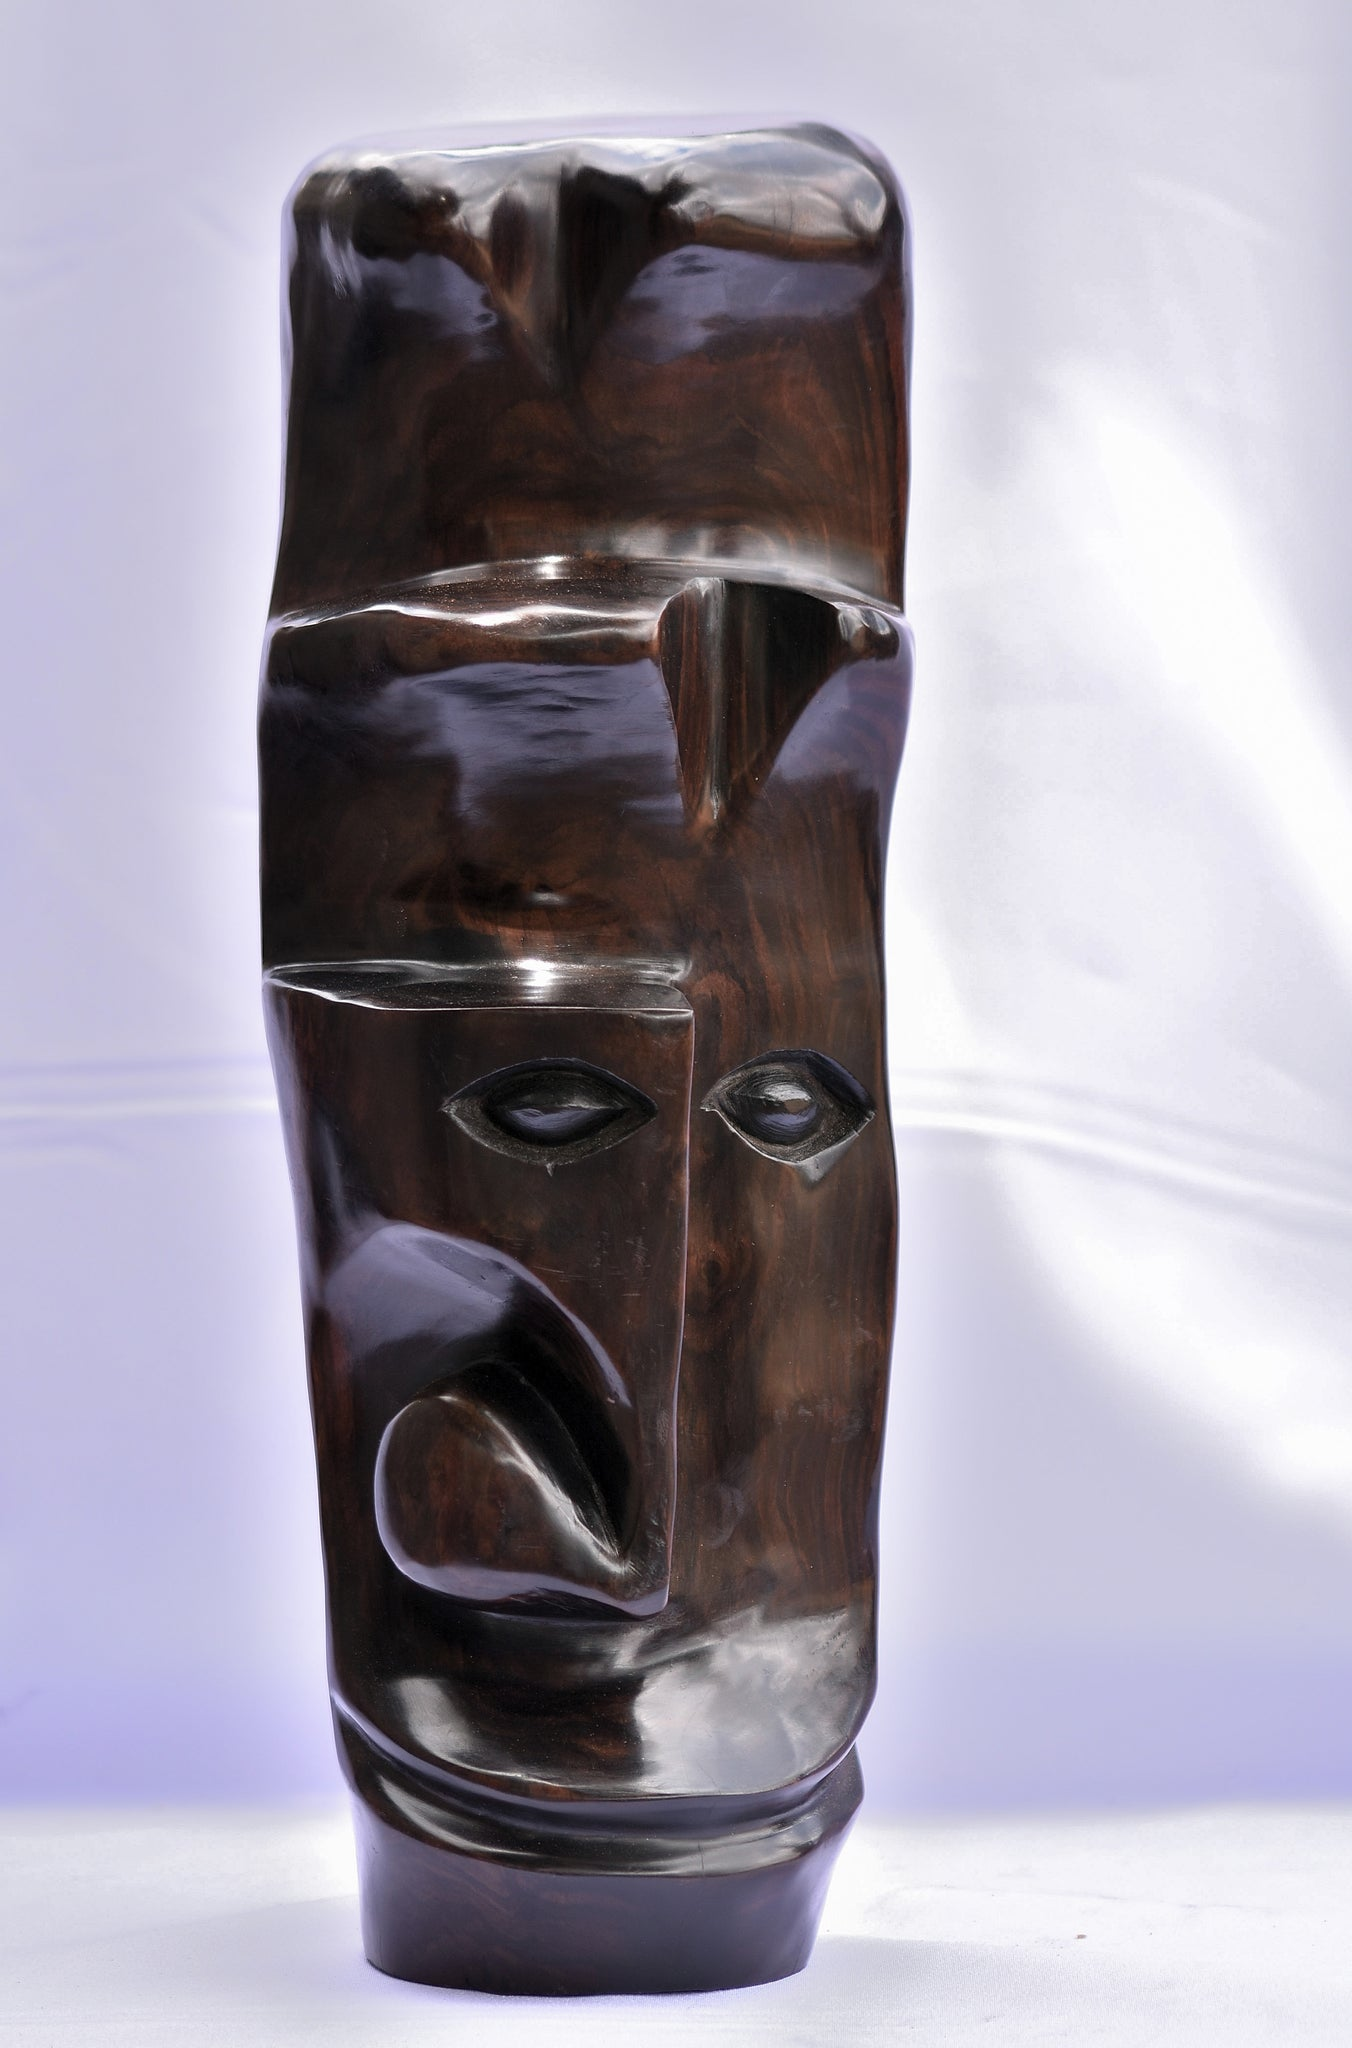 Handmade African Abstract Face Sculpture - Ebony Wood - Moses Chikoti